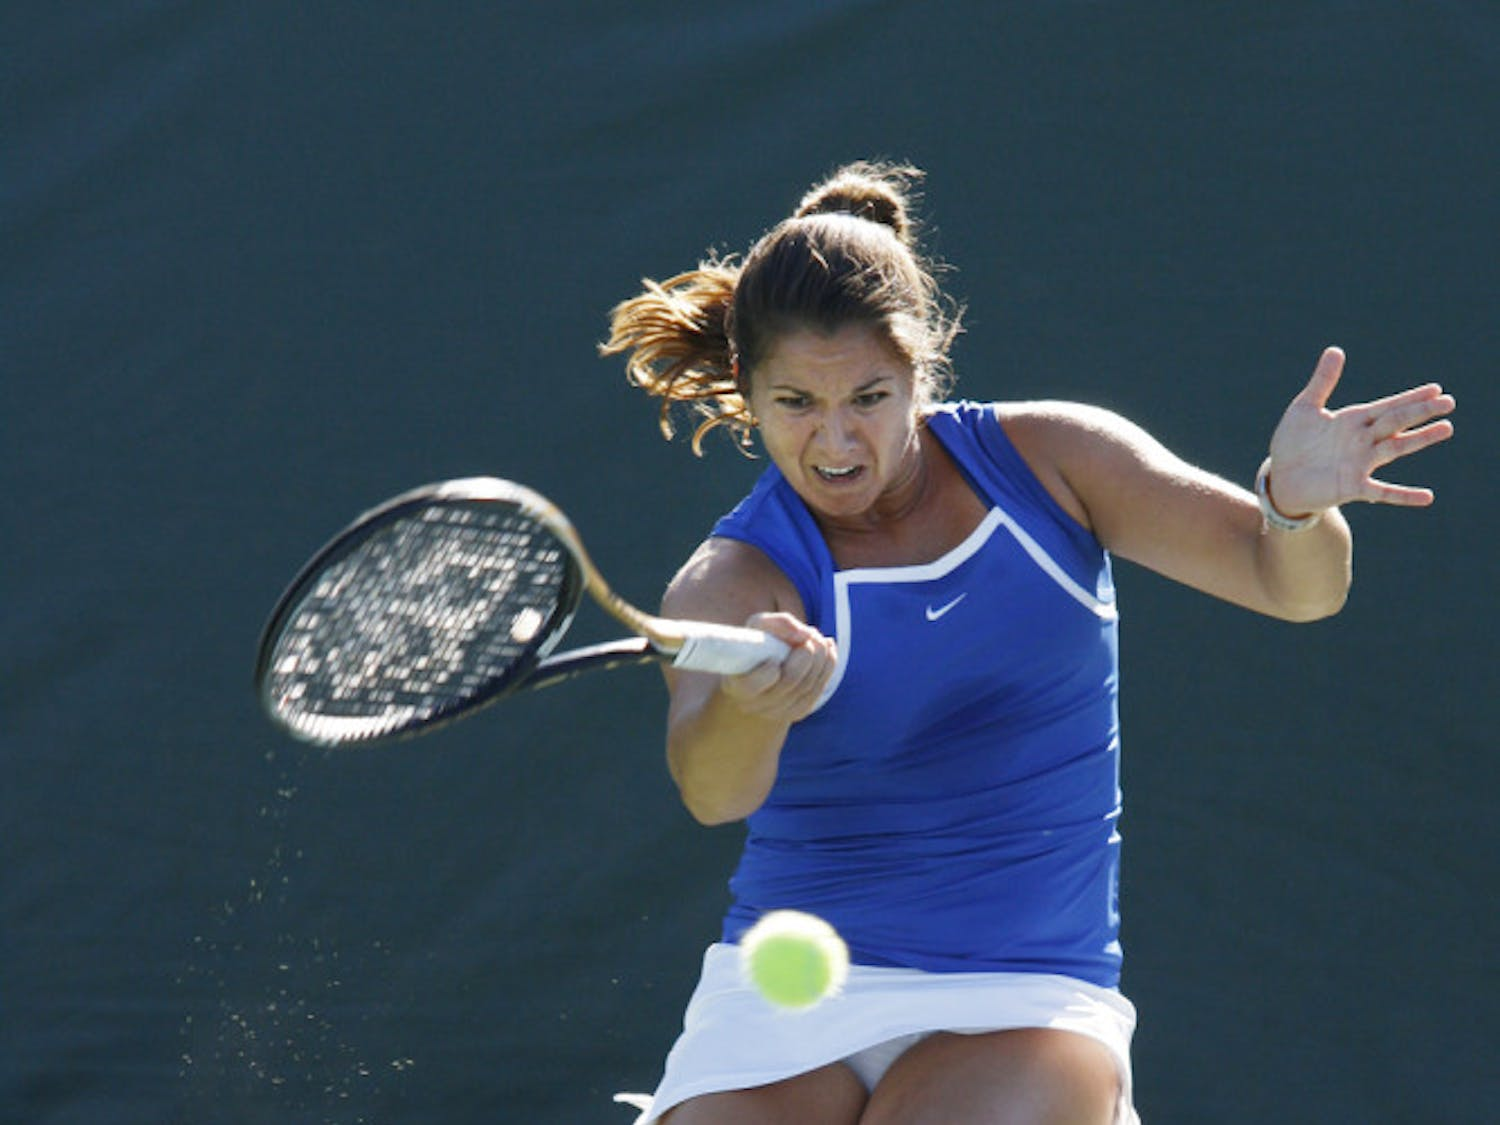 Junior Alexandra Cercone swings during Florida's 7-0 victory against Baylor on Feb. 2 at Linder Stadium.